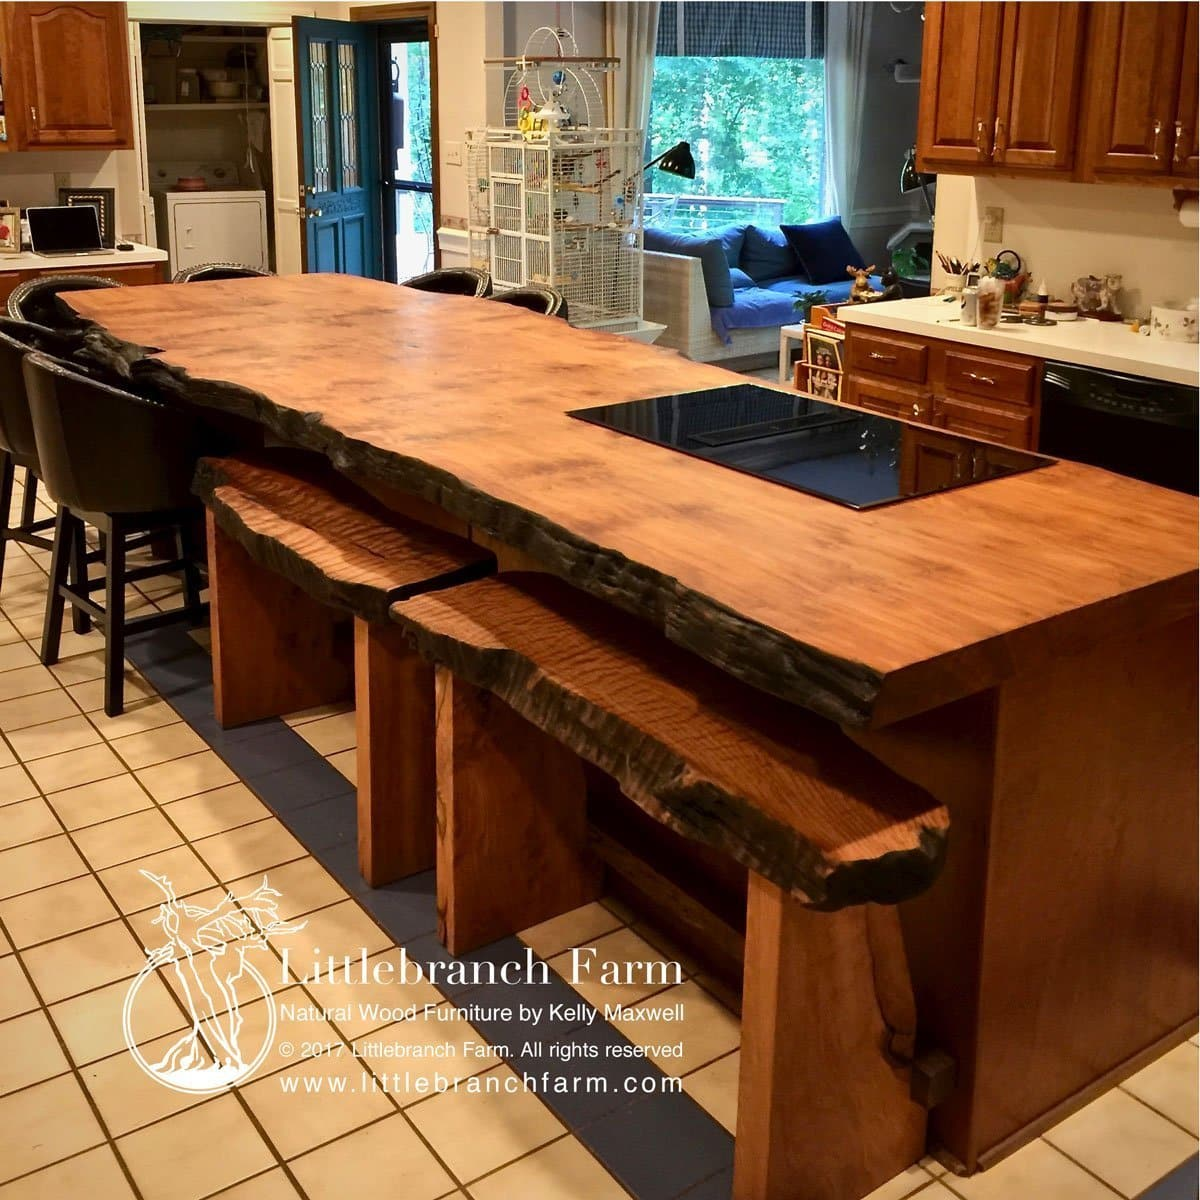 Etonnant This Live Edge Wood Countertop With Custom Double Barstool Benches. Our  Custom Furniture Makers Also Design And Build Our Rustic Style Live Edge  Furniture.